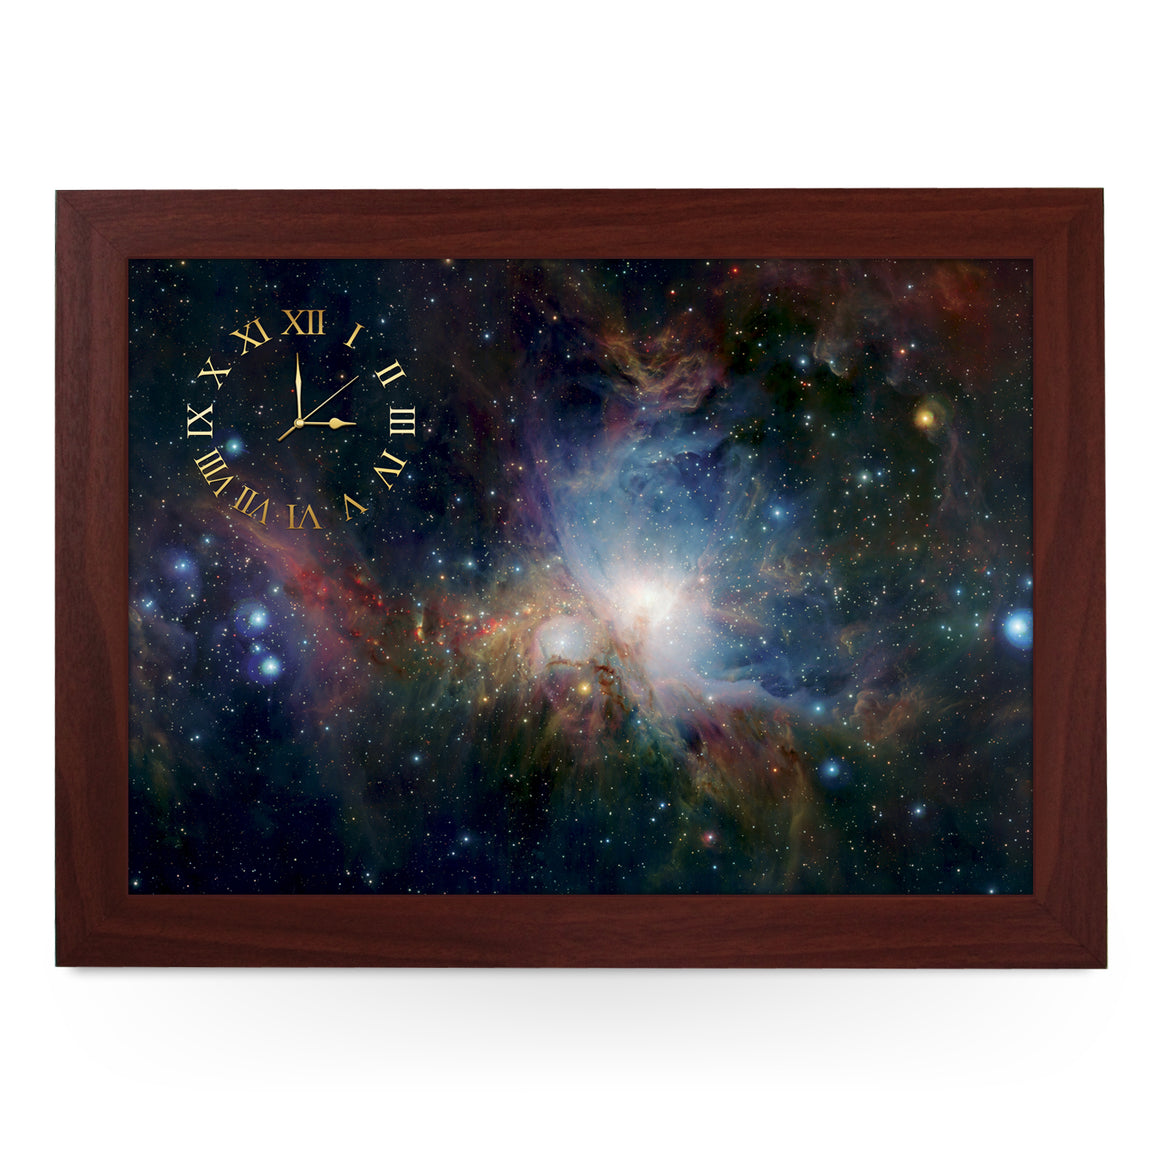 Wooden Picture Frame Clock. CL130 Orion Nebula